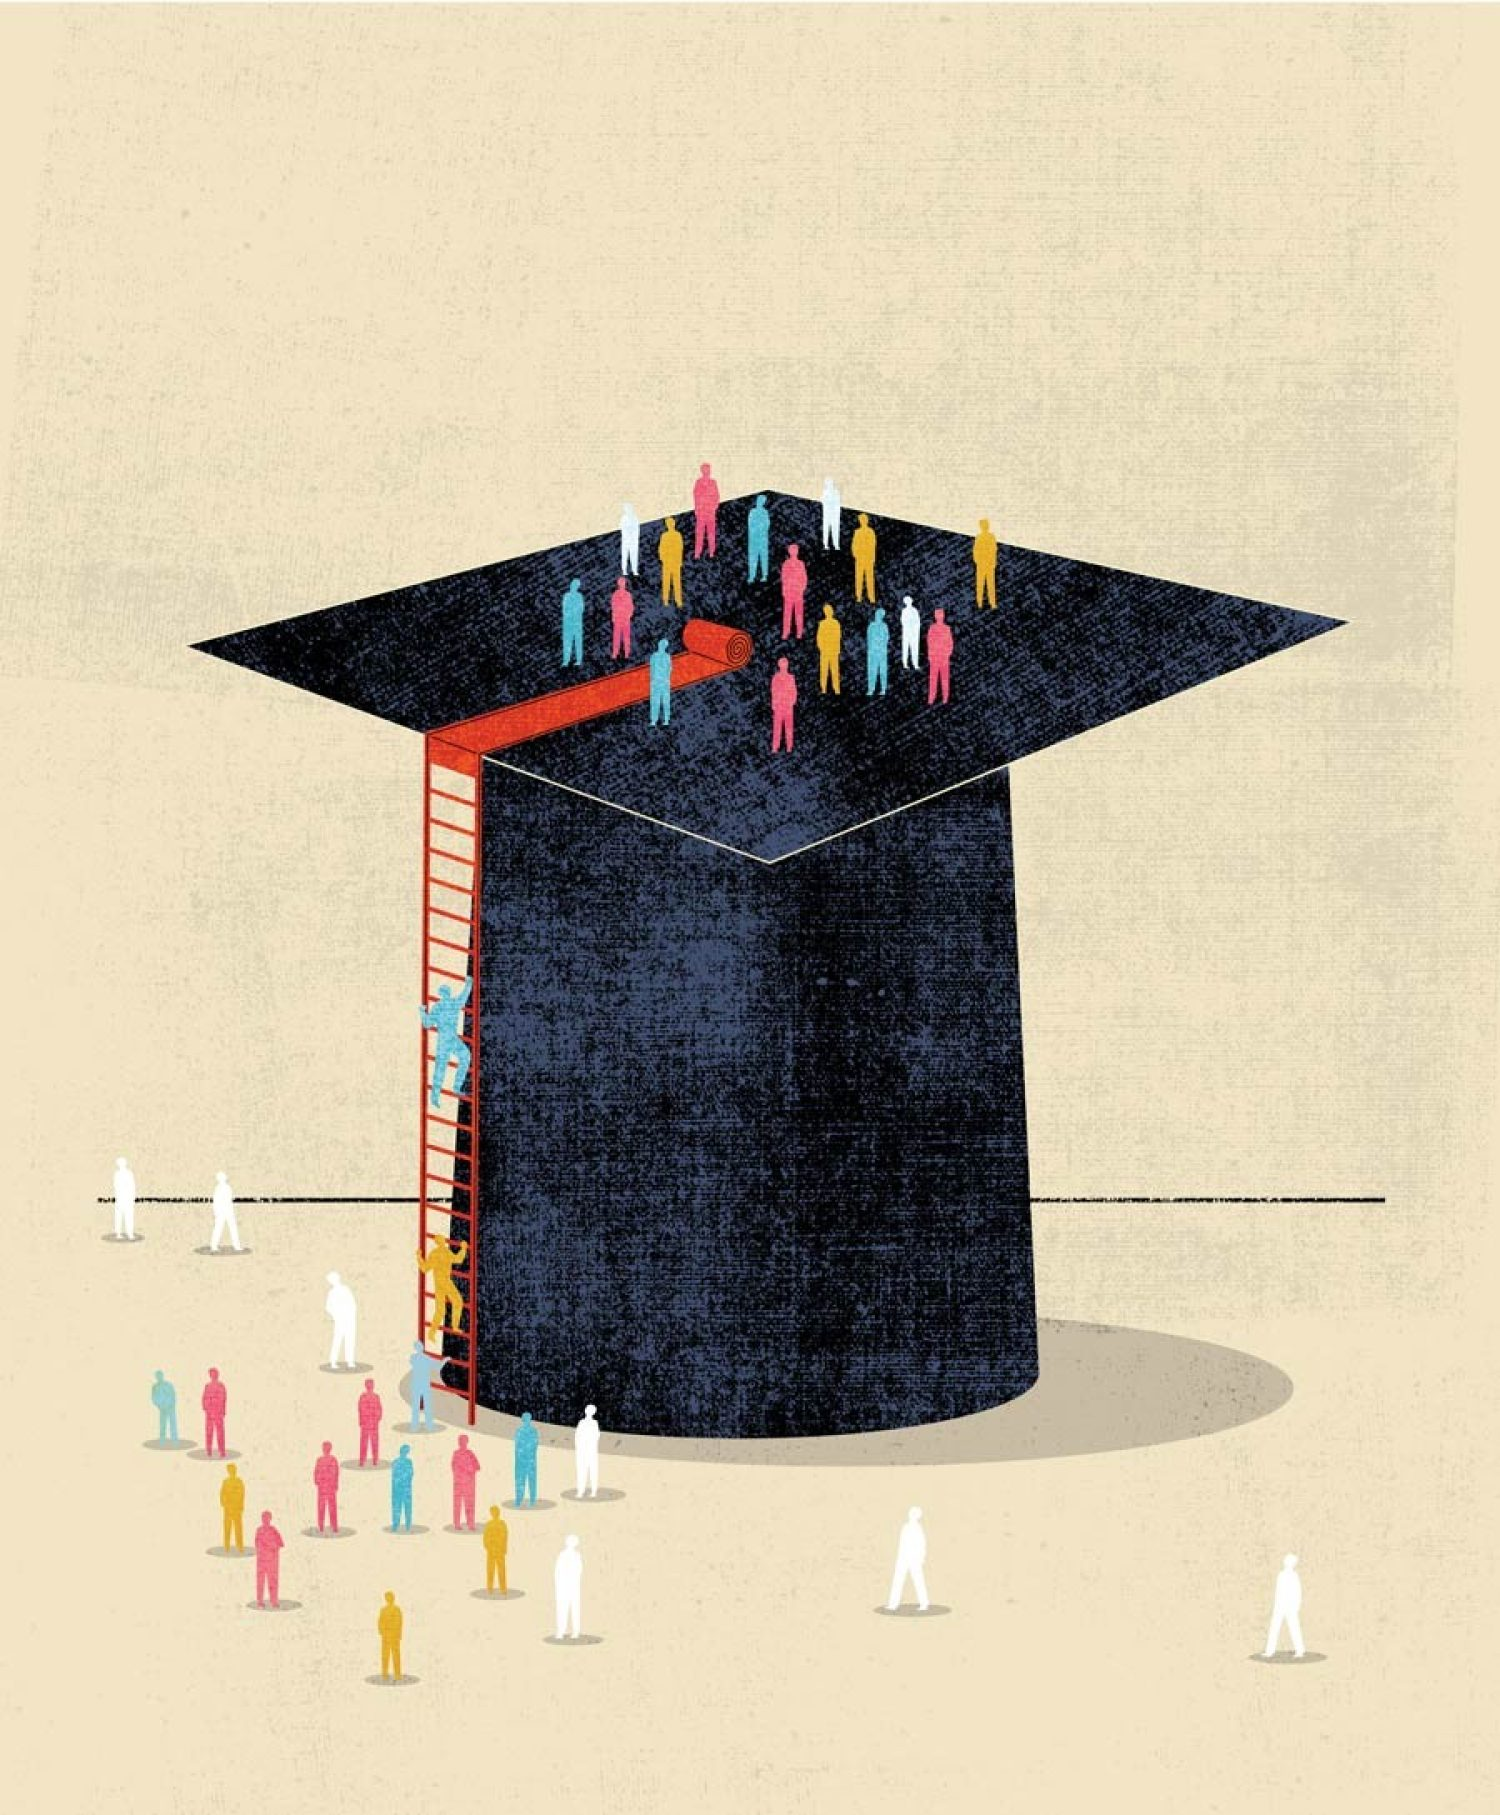 An illustration showing people scaling a graduation cap.